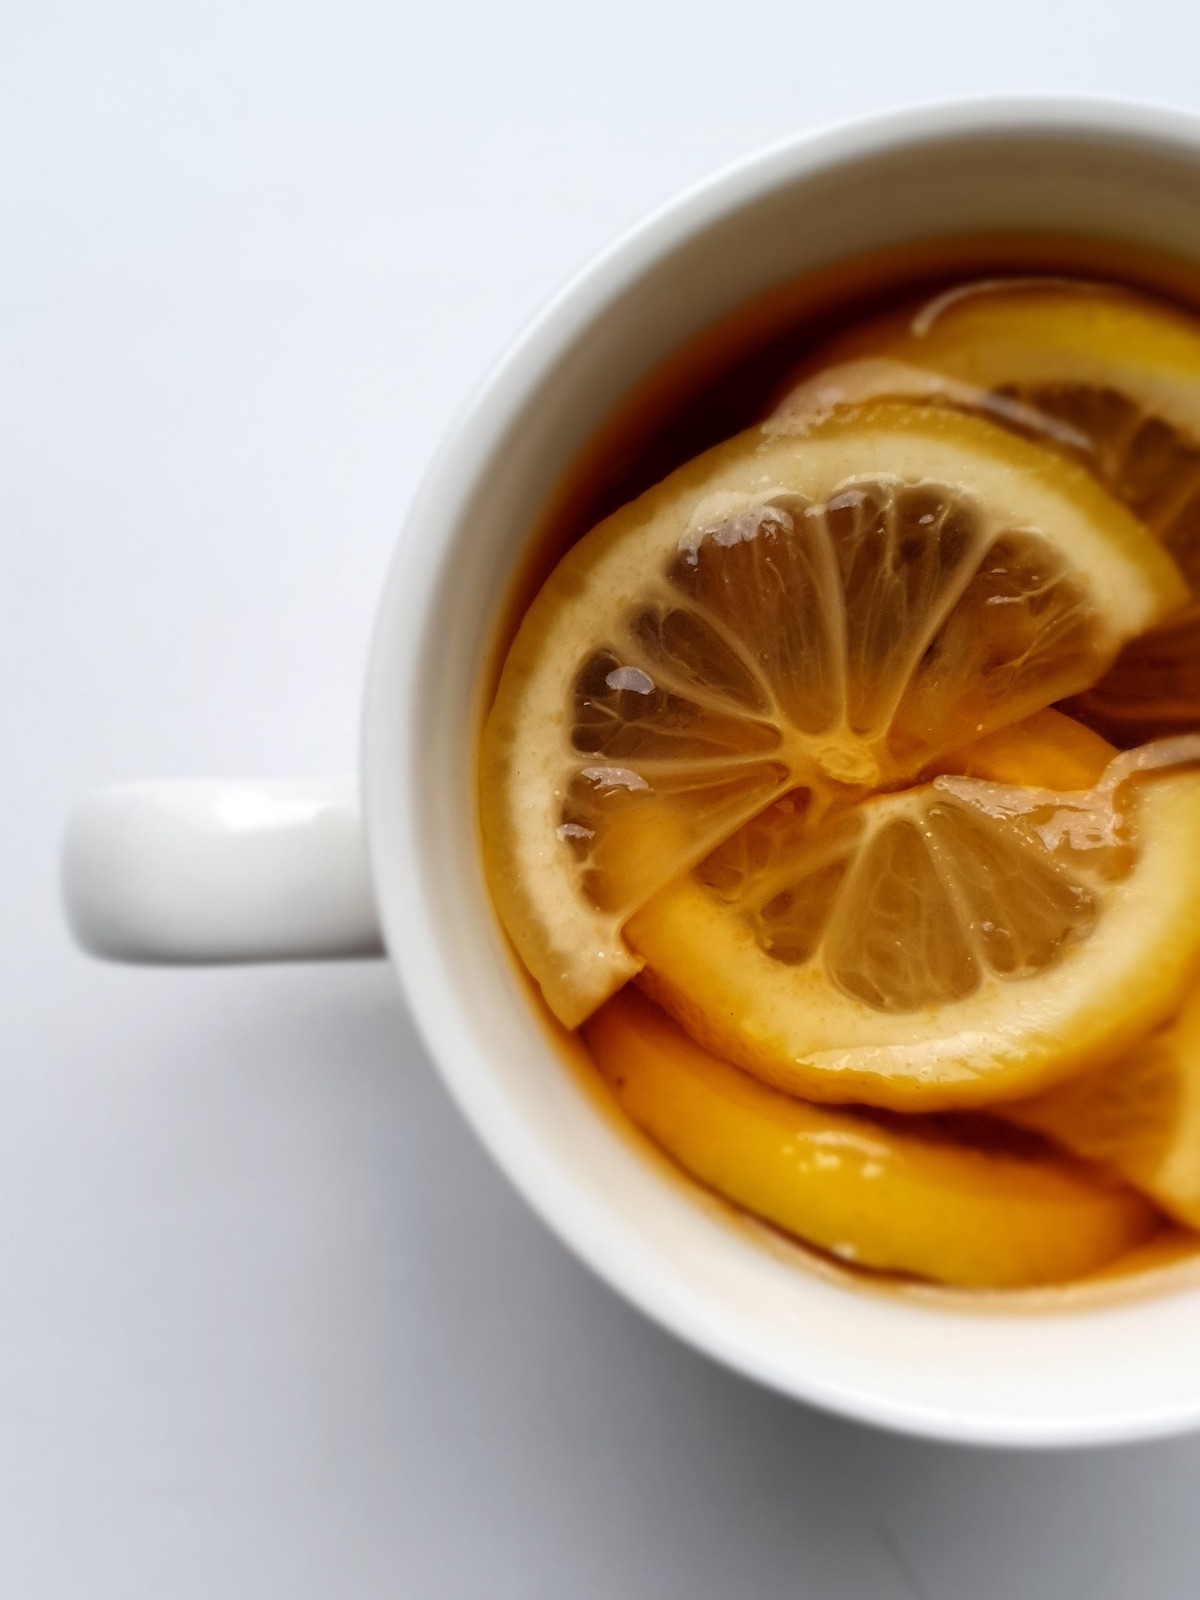 A Cup of Lemon Tea